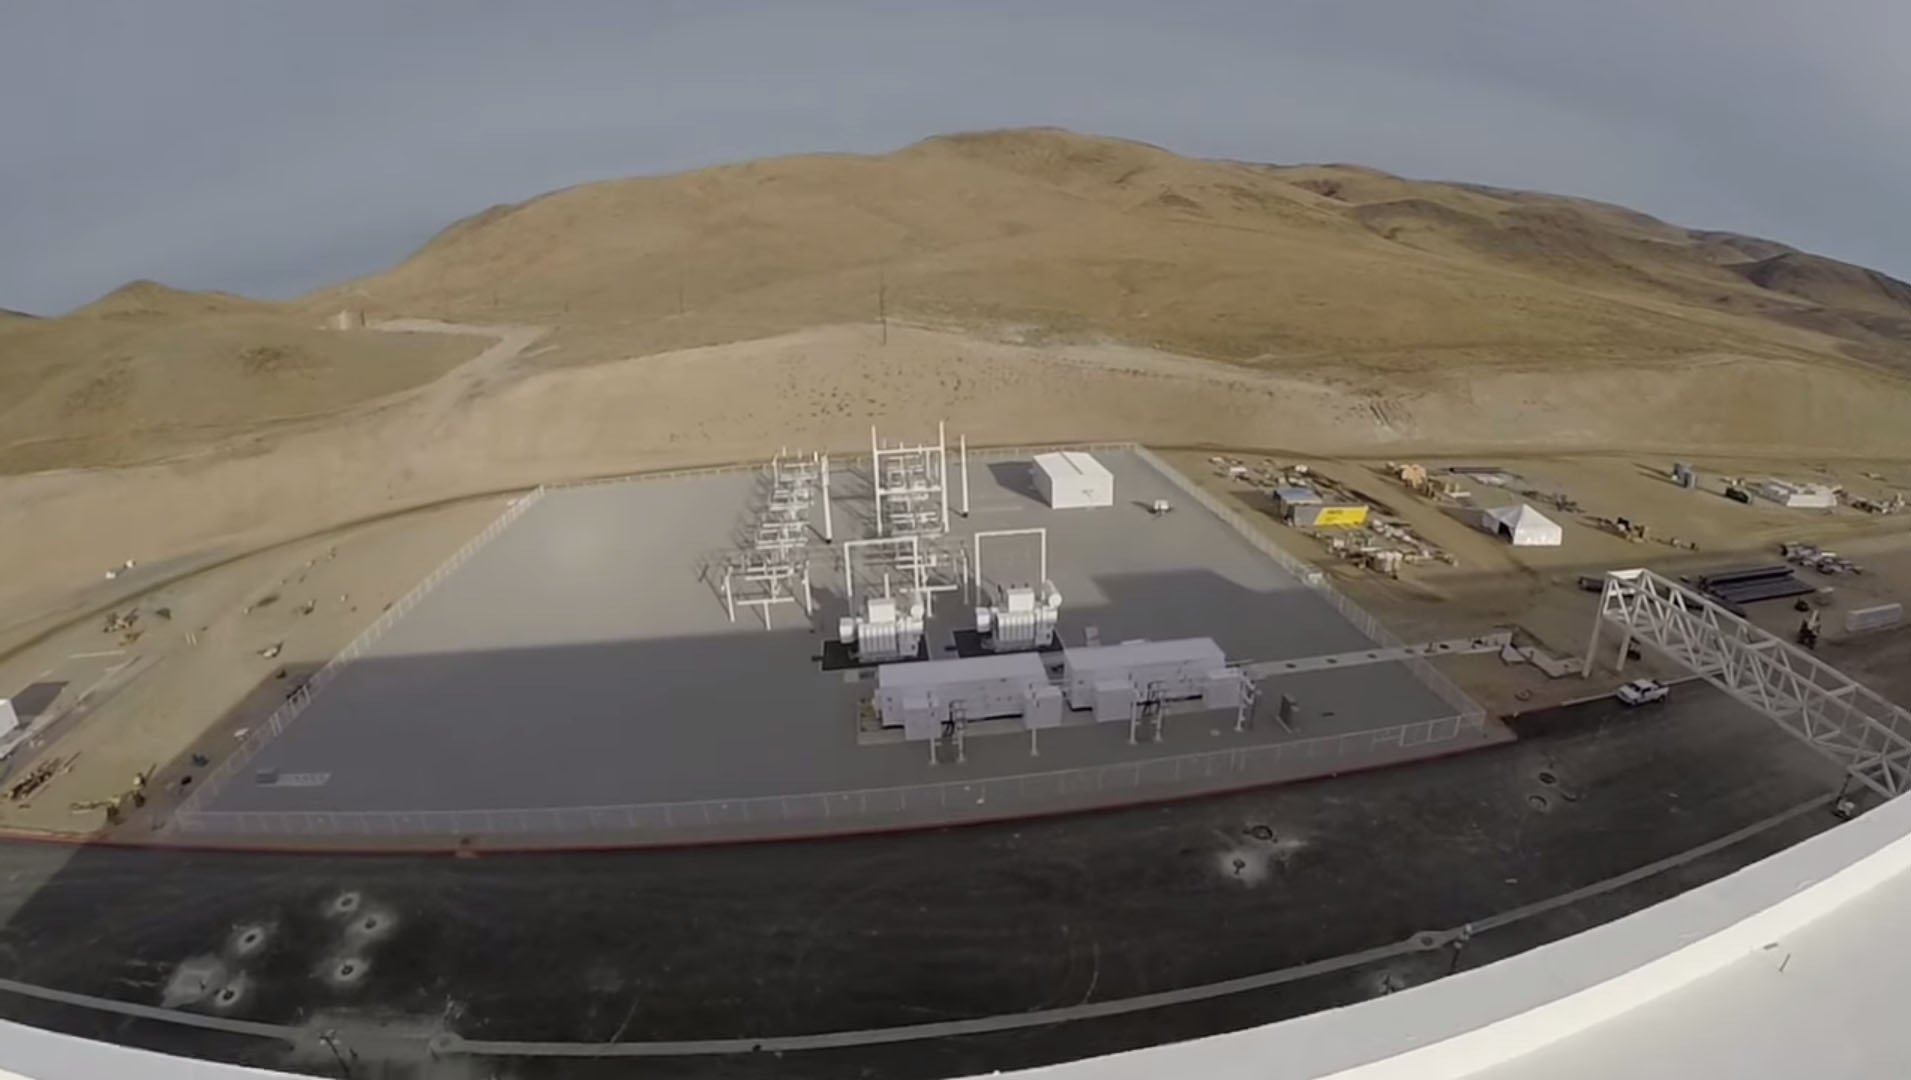 First look at Elon Musk's Tesla Gigafactory